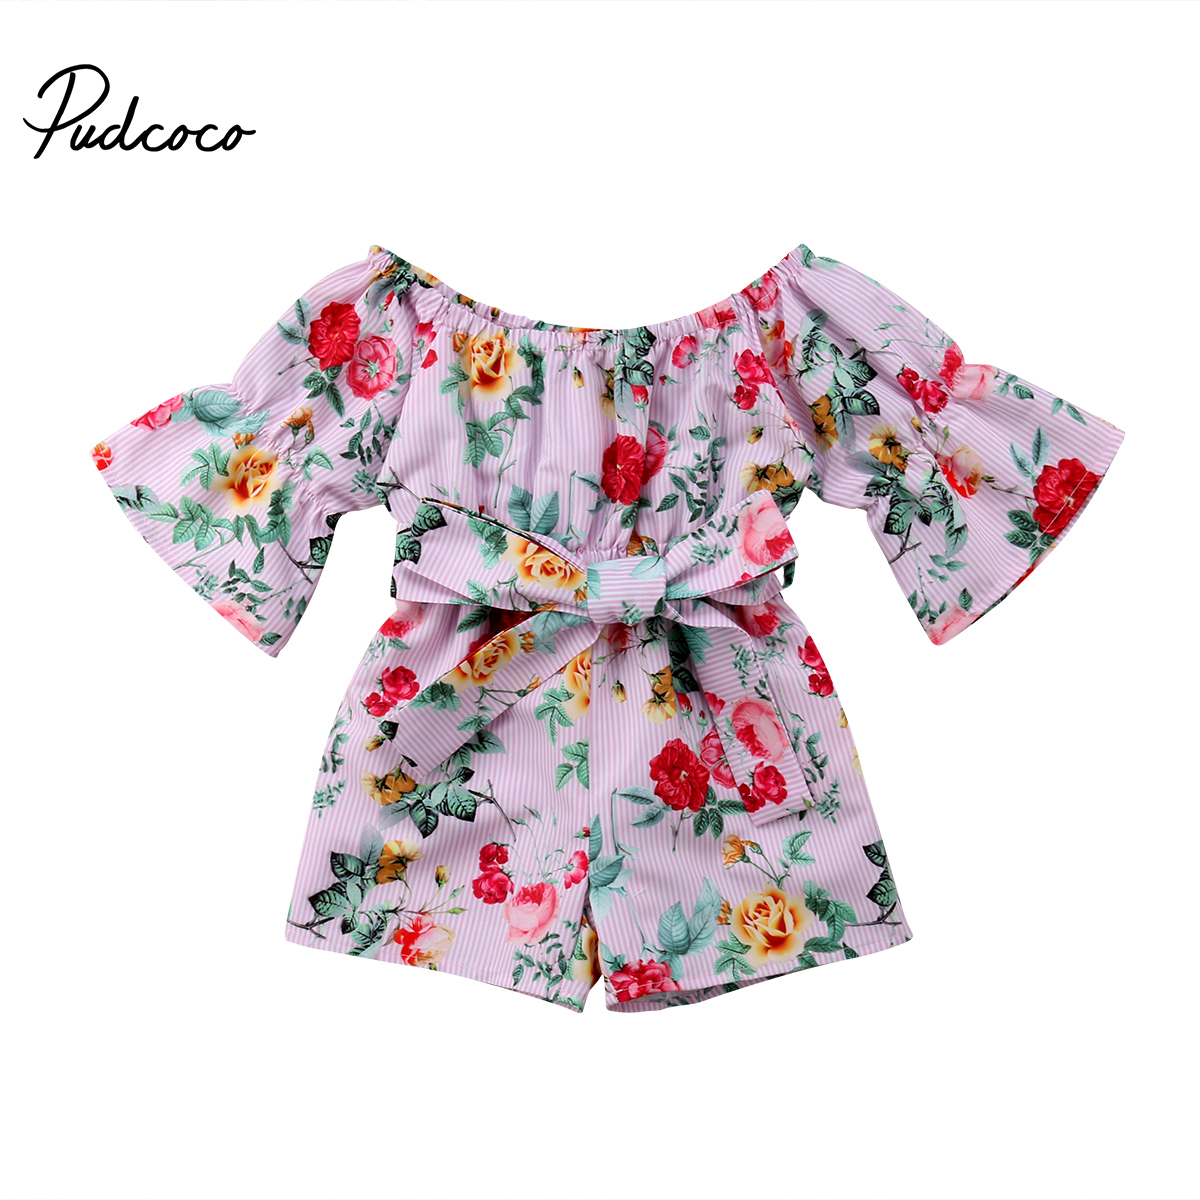 Pudcoco 2018 Newborn Kids Baby Girl Romper Floral Flared Sleeve Bowknot Party Sunsuit Jumpsuit Playsuit Clothes Outfits Summer